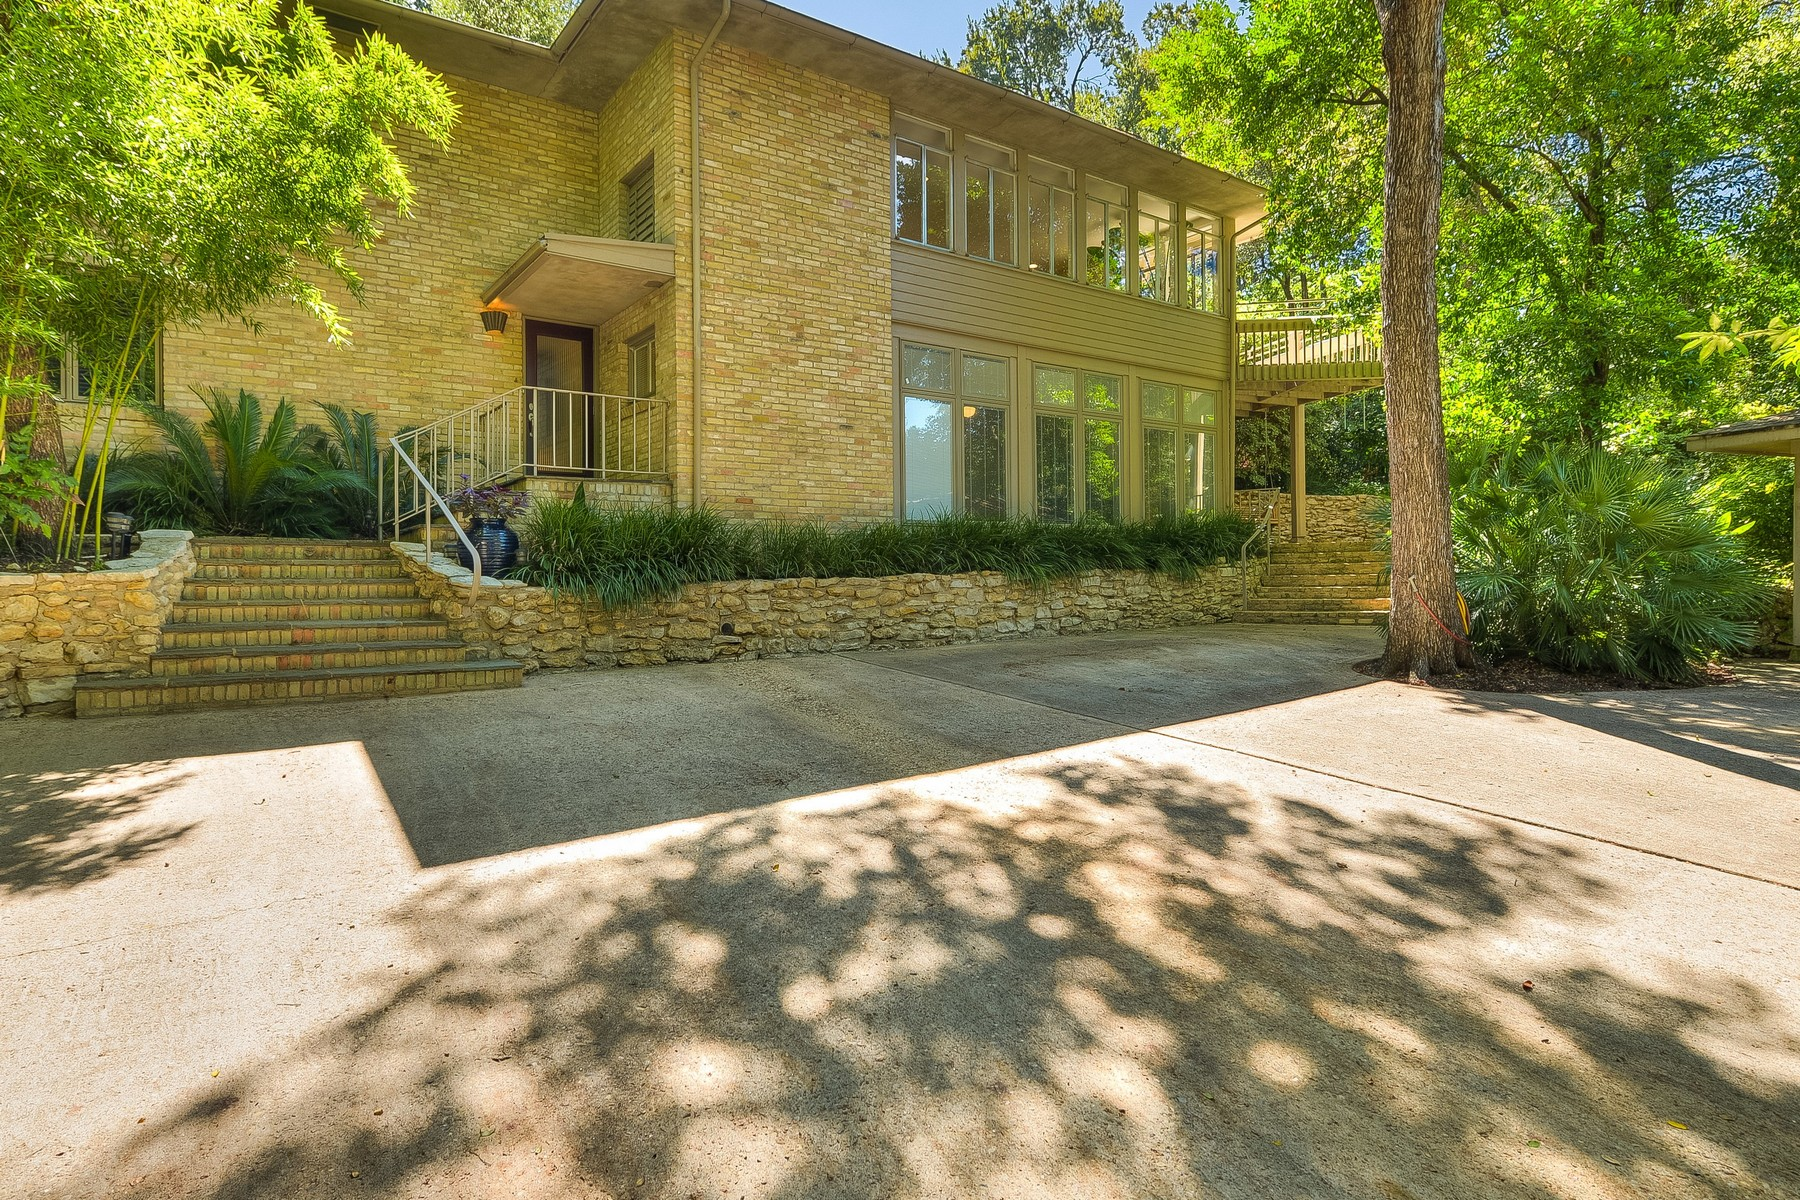 Single Family Home for Sale at Stunning Mid-Century Modern Architecture 2311 Shoal Creek Blvd Austin, Texas, 78705 United States